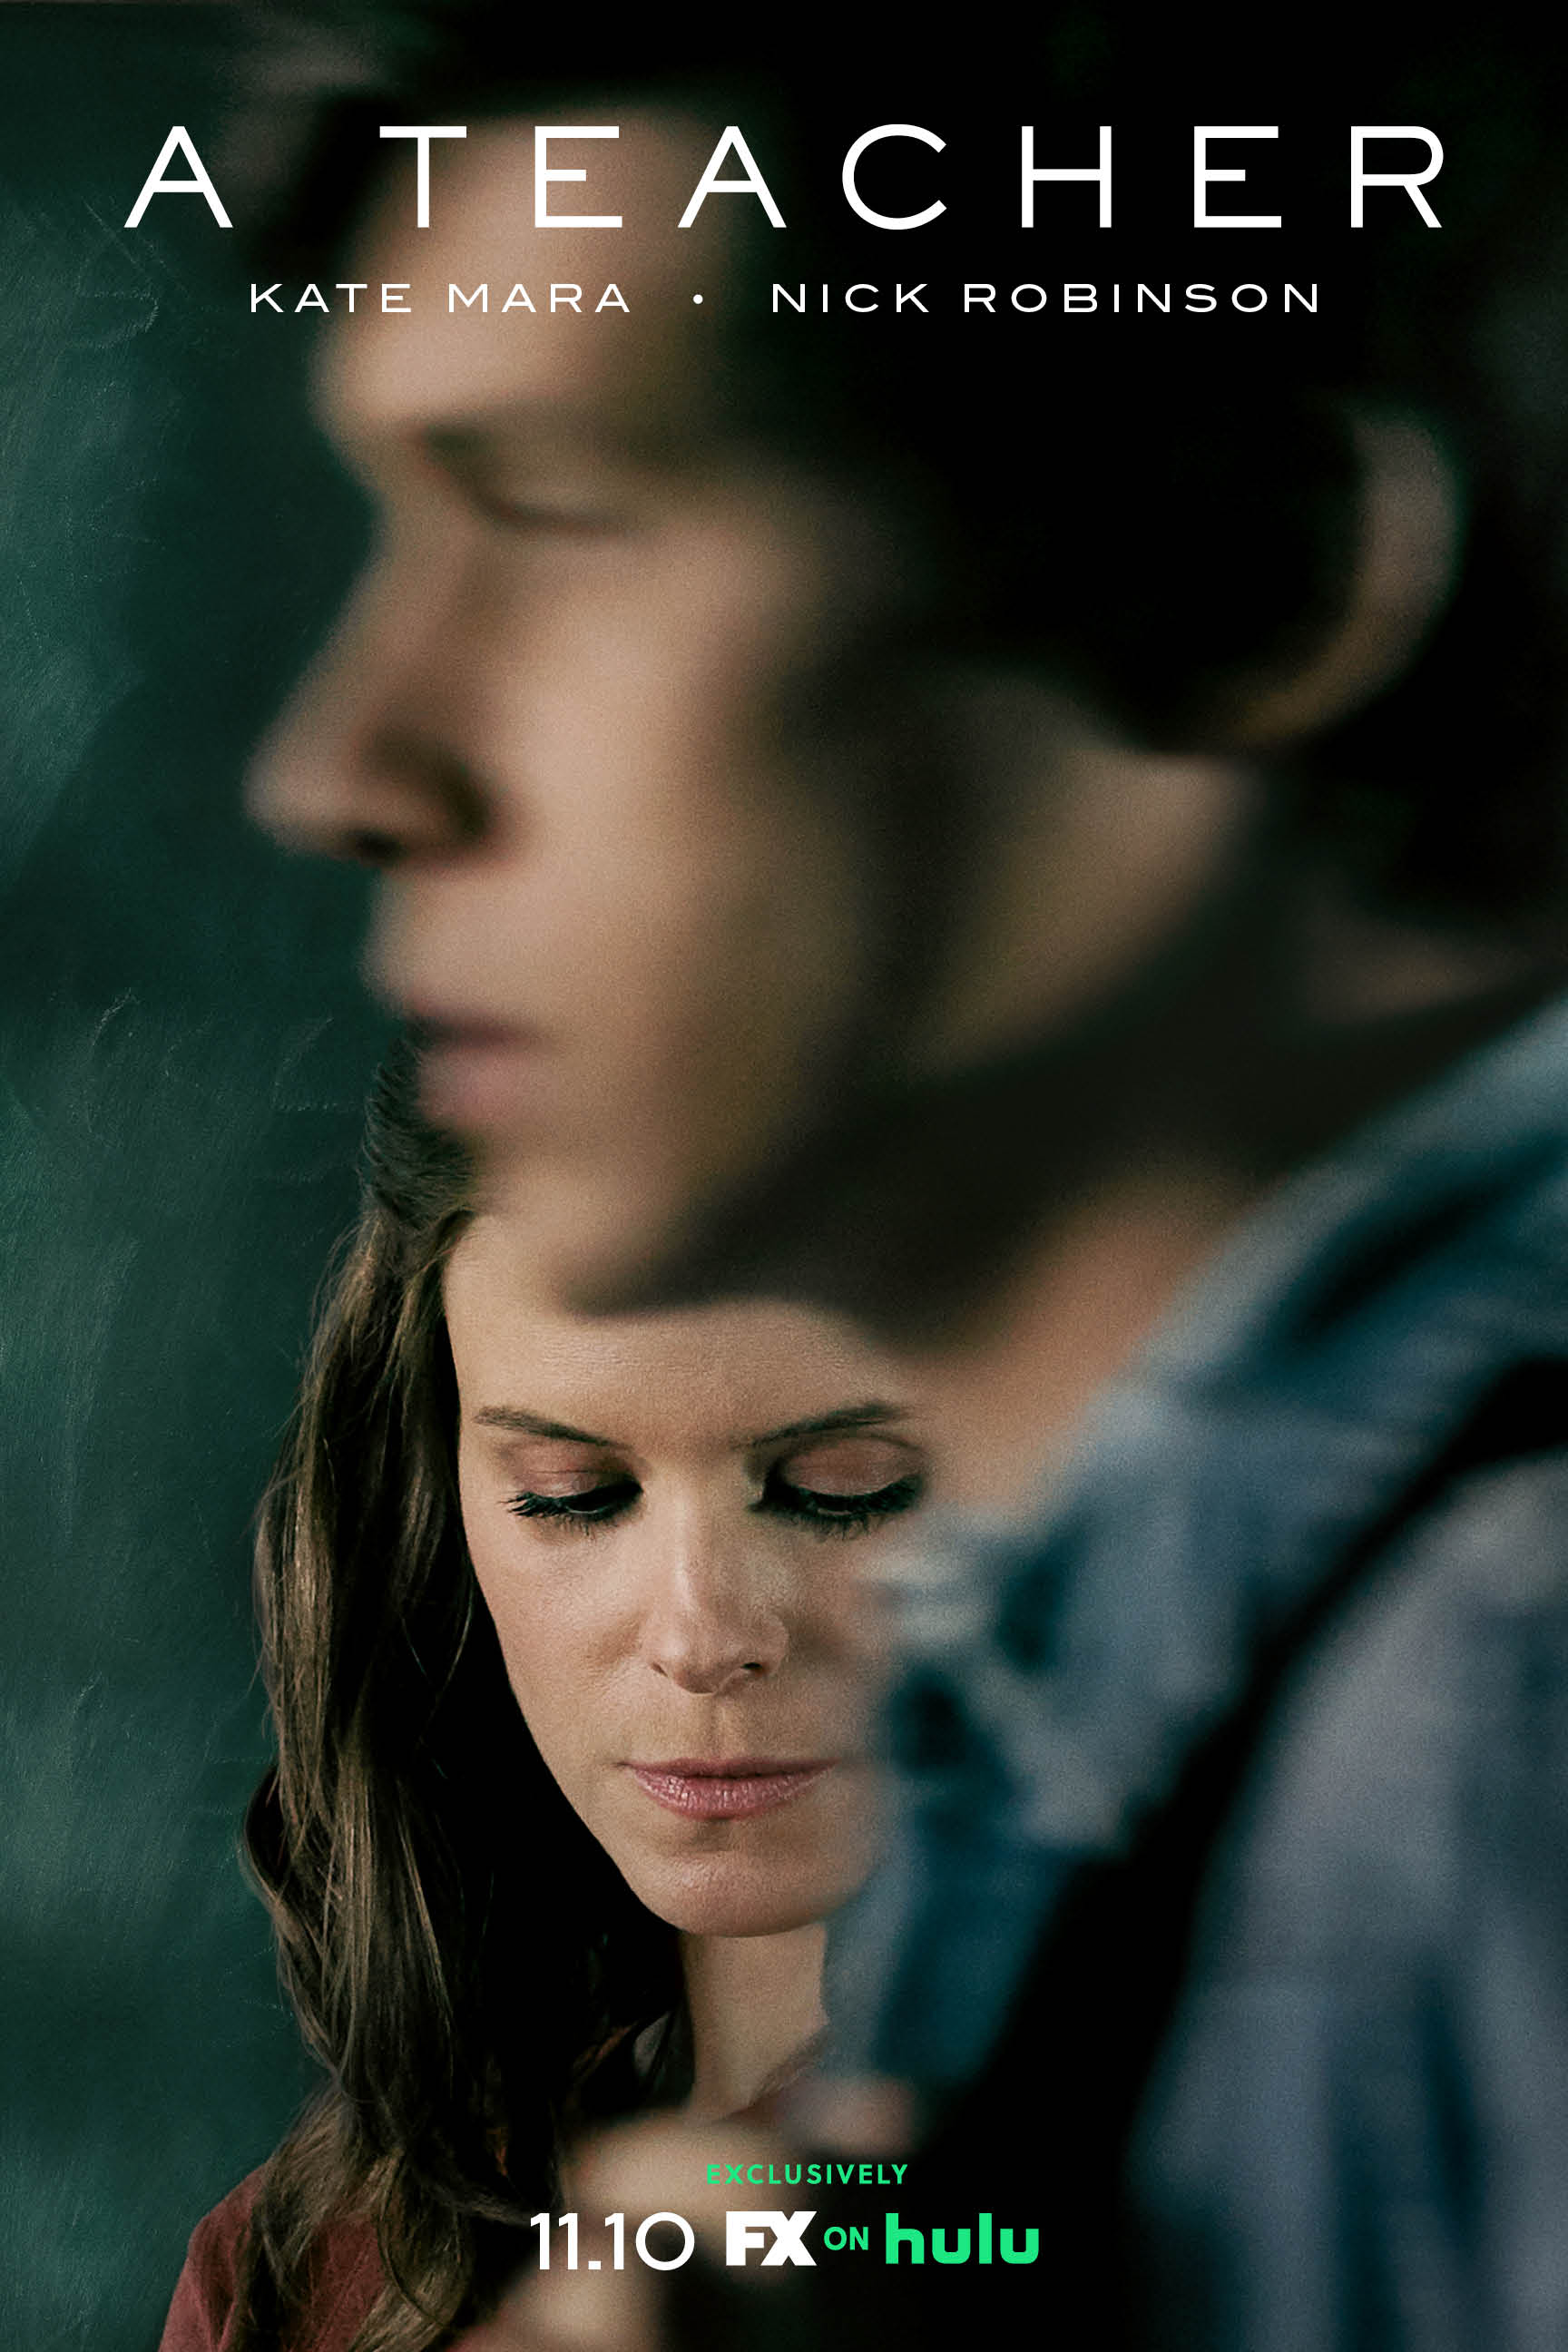 Kate Mara, Nick Robinson - A Teacher Poster